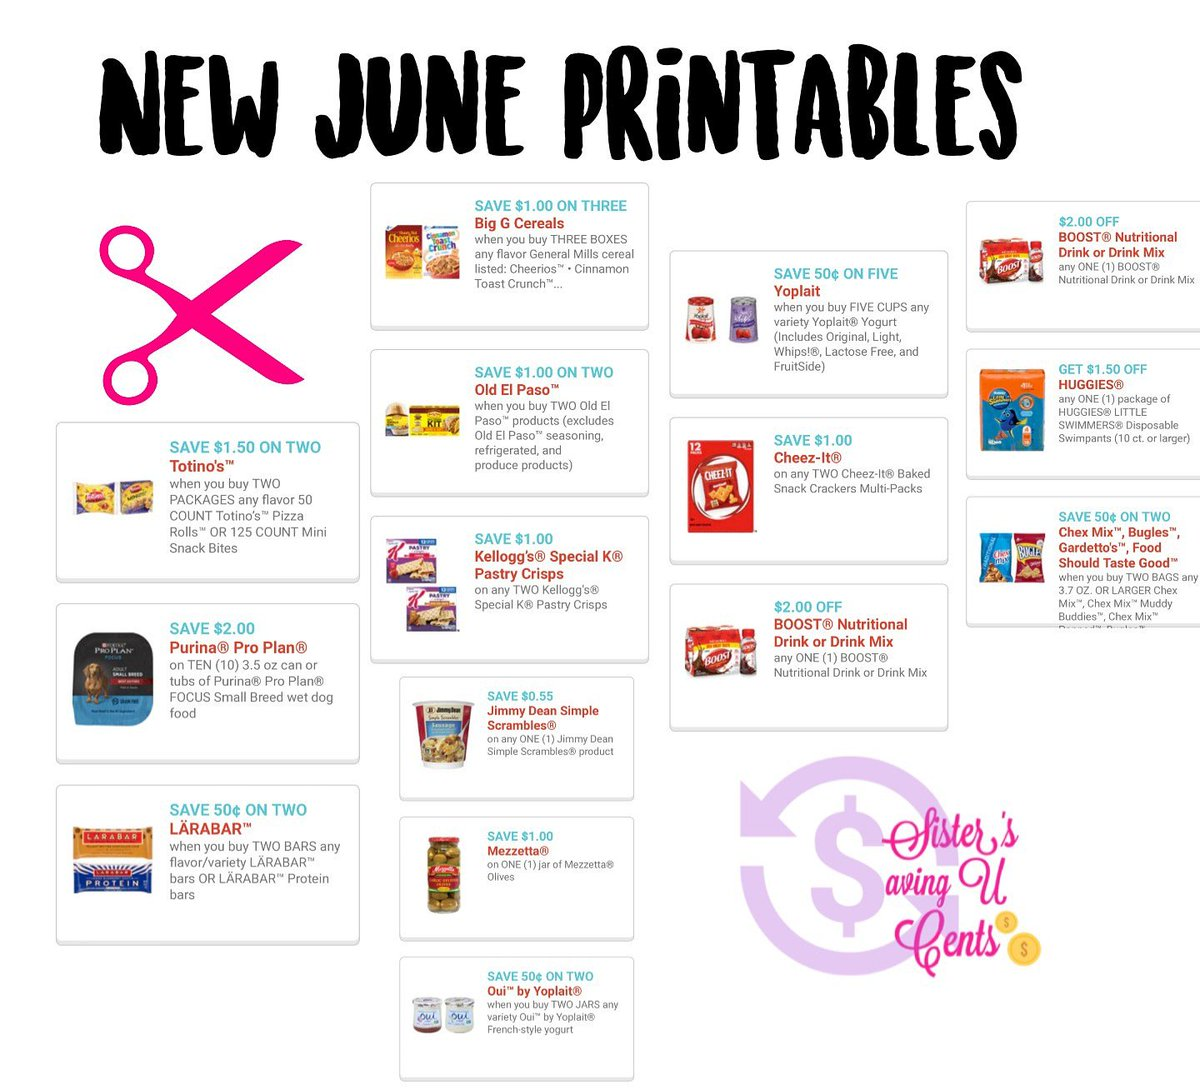 graphic about Boost Printable Coupons identify newprintables hashtag upon Twitter